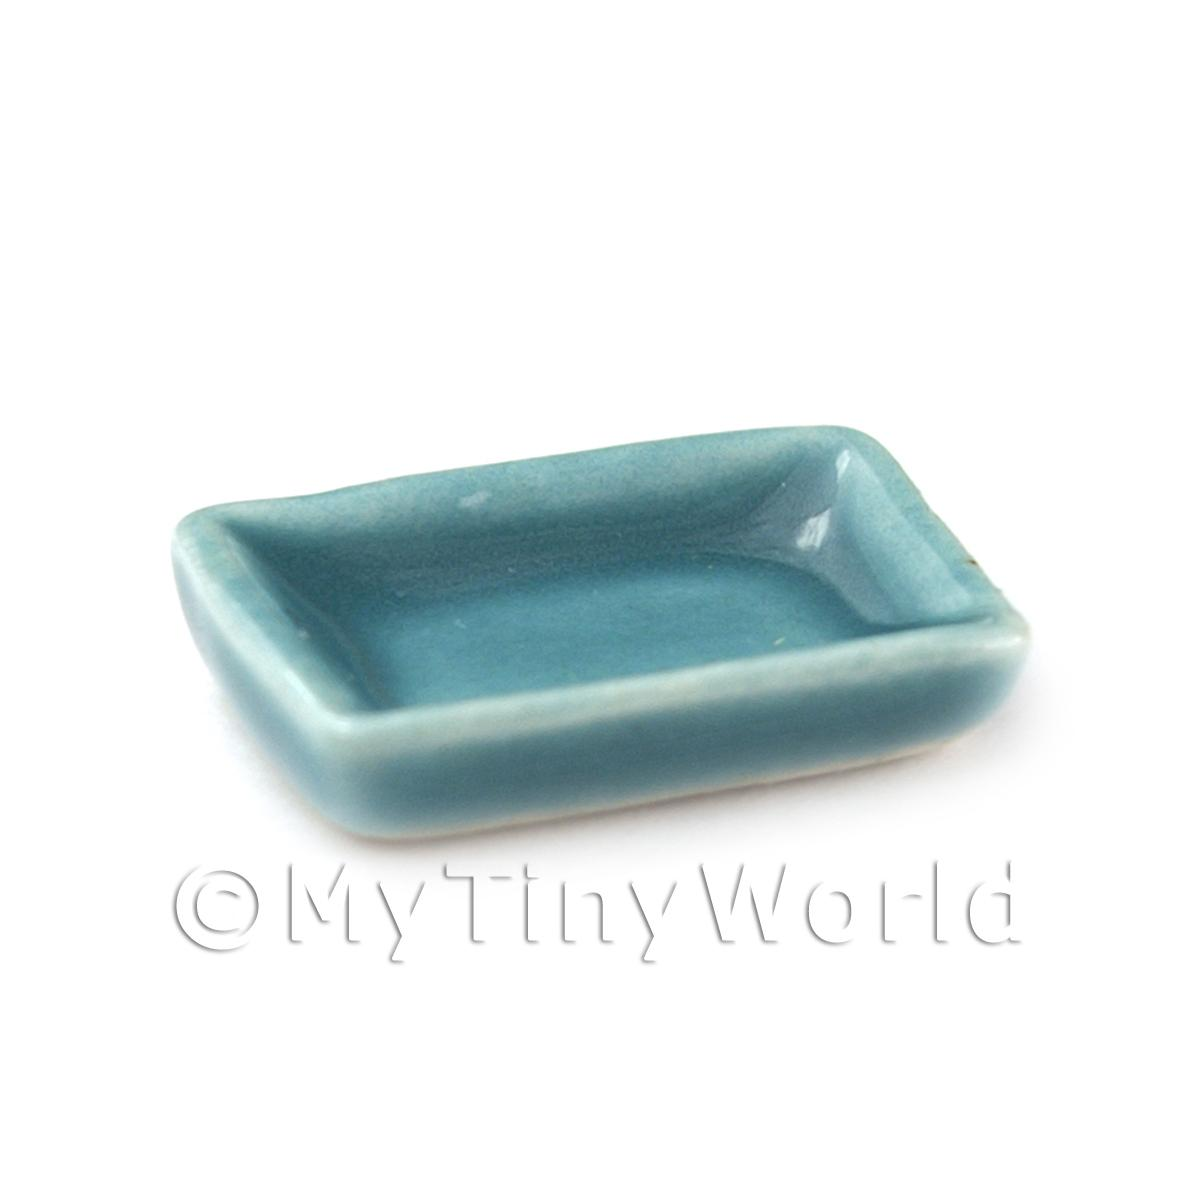 Dolls House Miniature 20mm Aquamarine Oblong Ceramic Plate